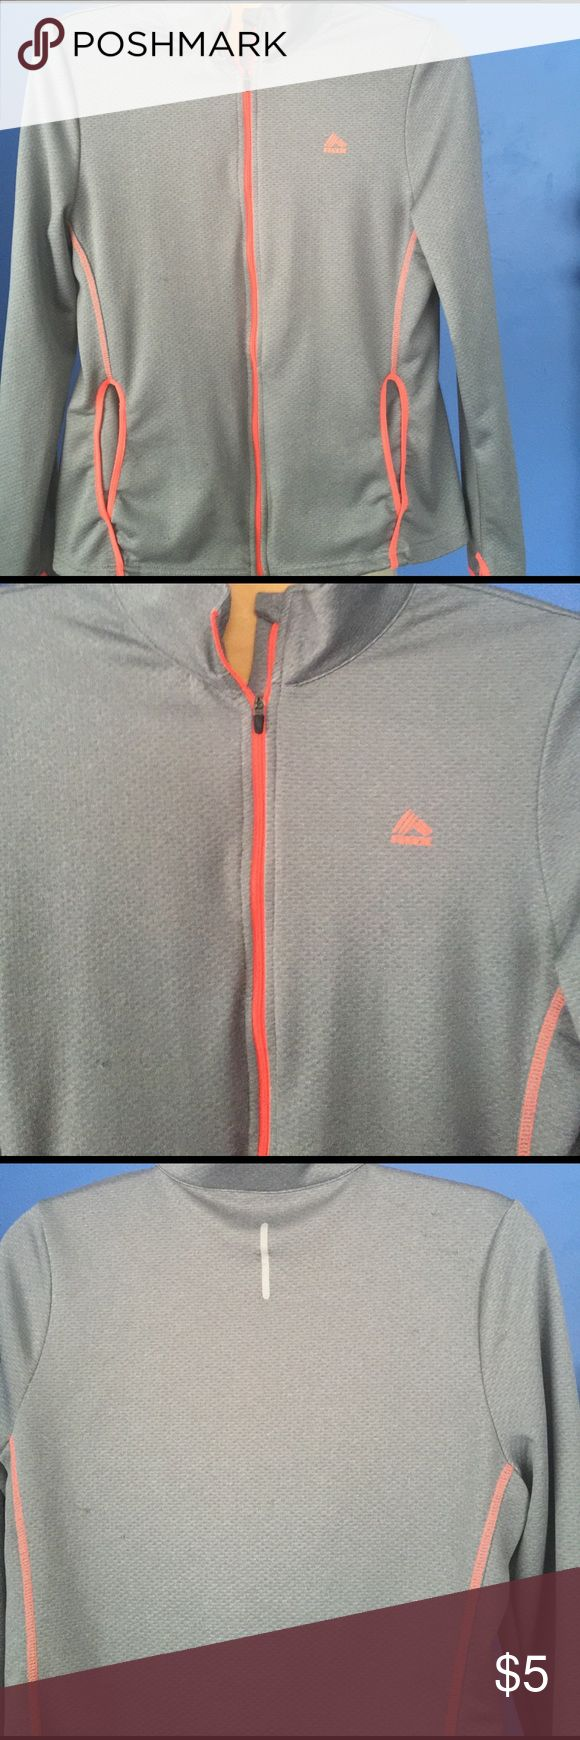 RBX grey zip front activewear jacket Womens grey zip up with orange trim. Size XL and has a couple of pulls. RBX Jackets & Coats